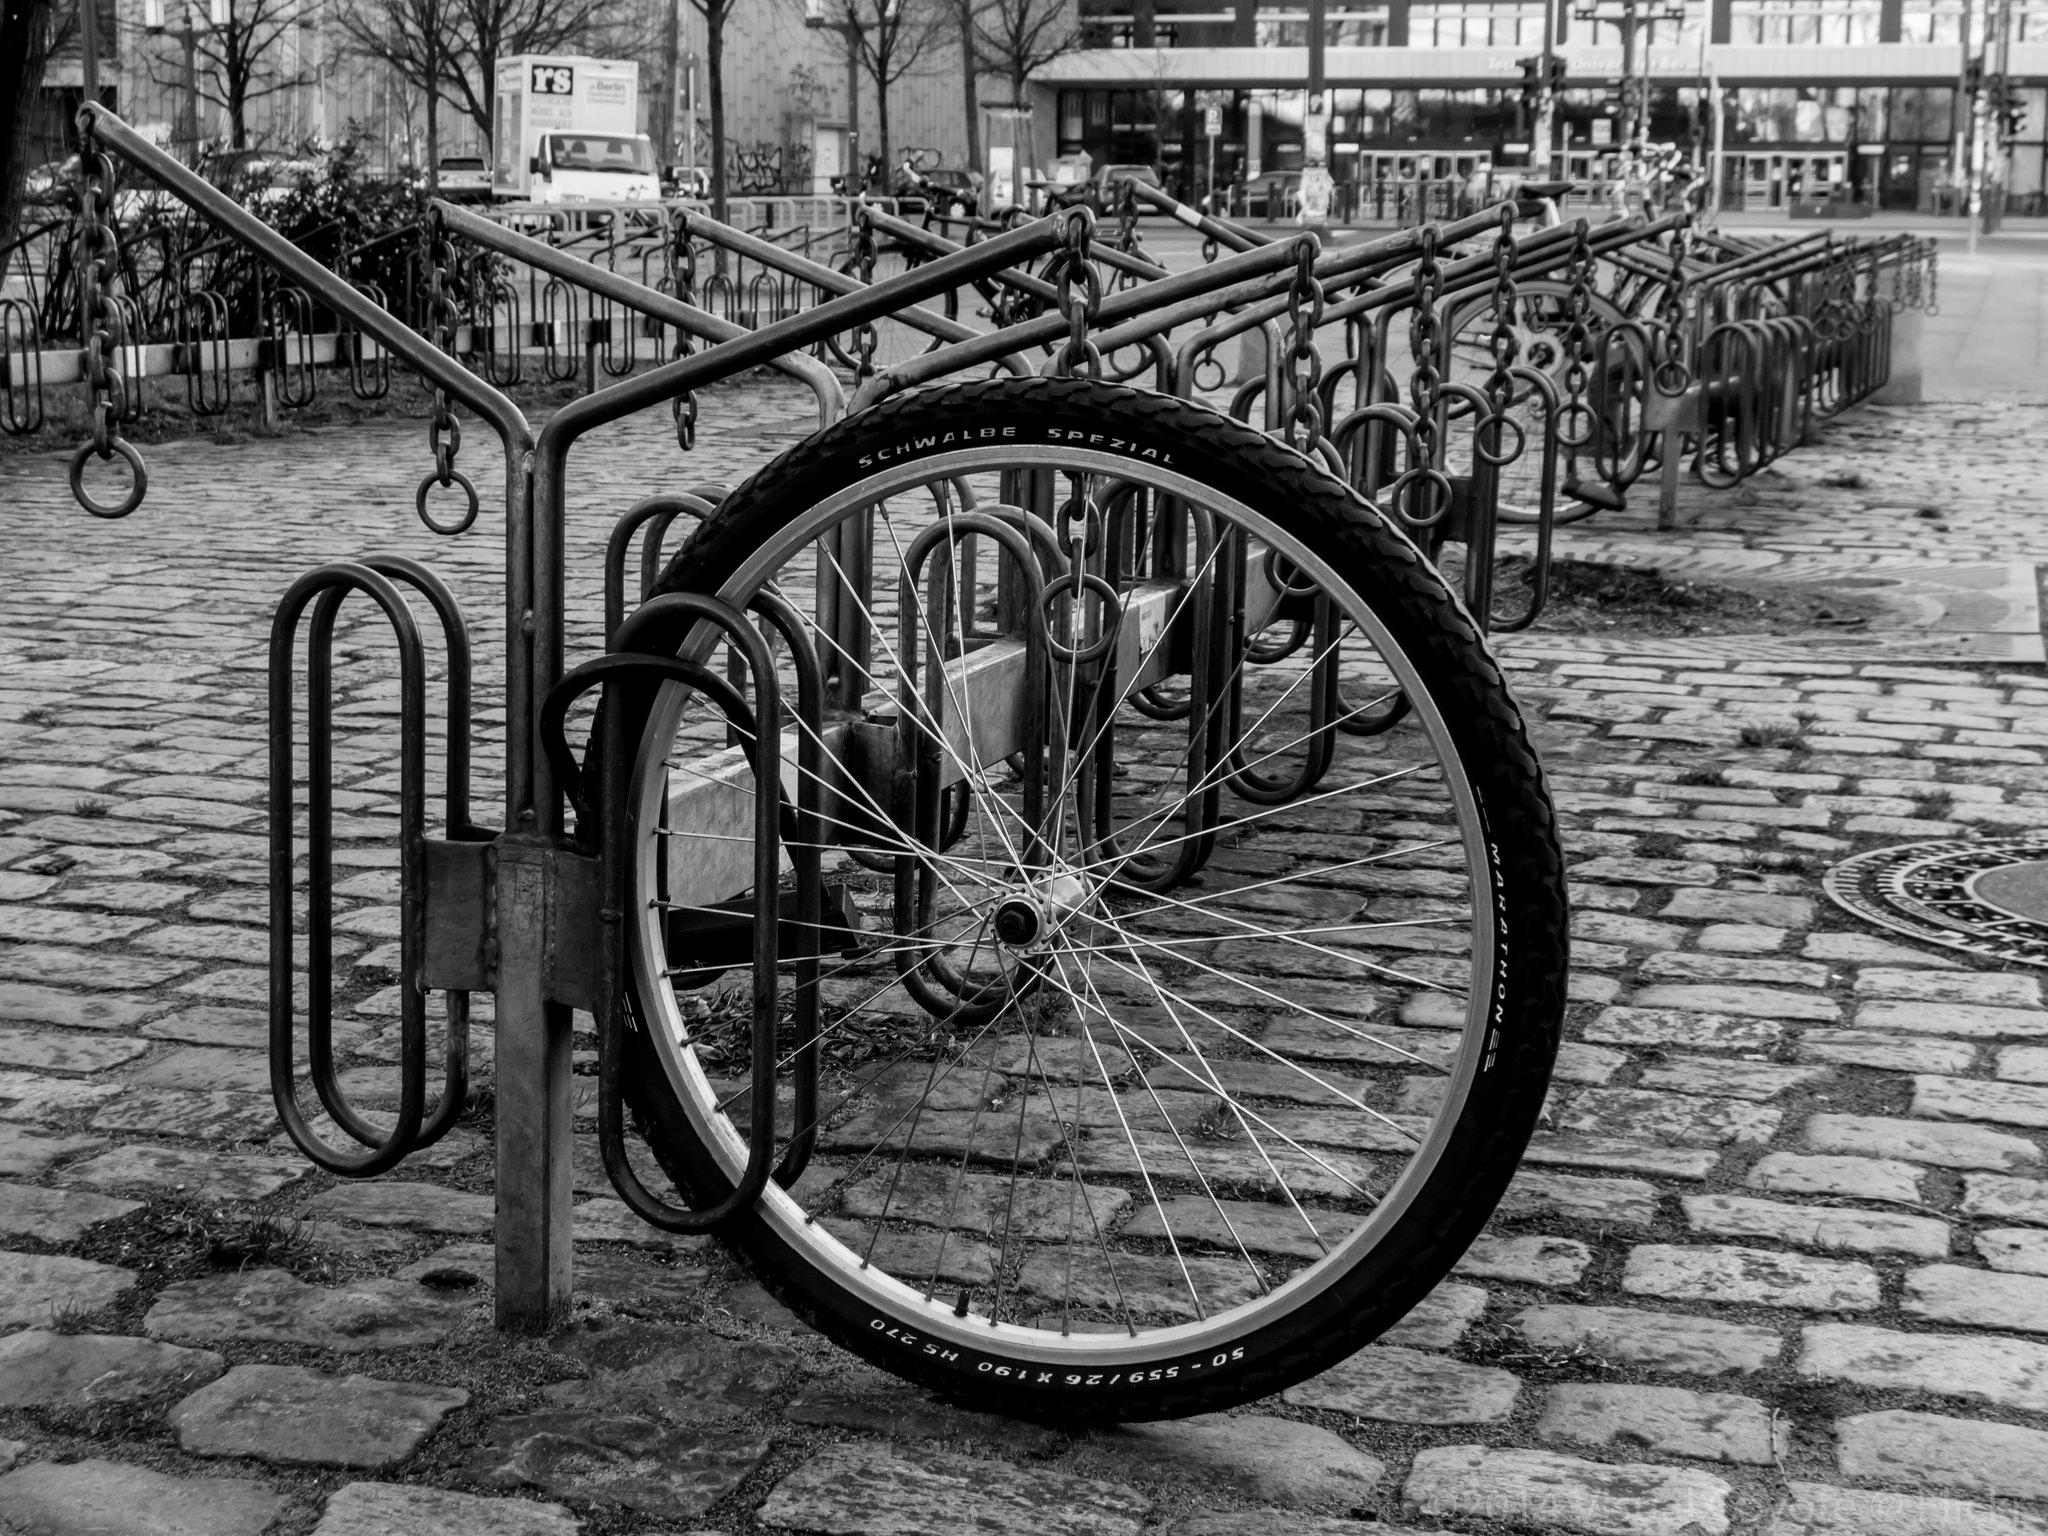 Stolen Bike by Visual Coyote (Flickr)